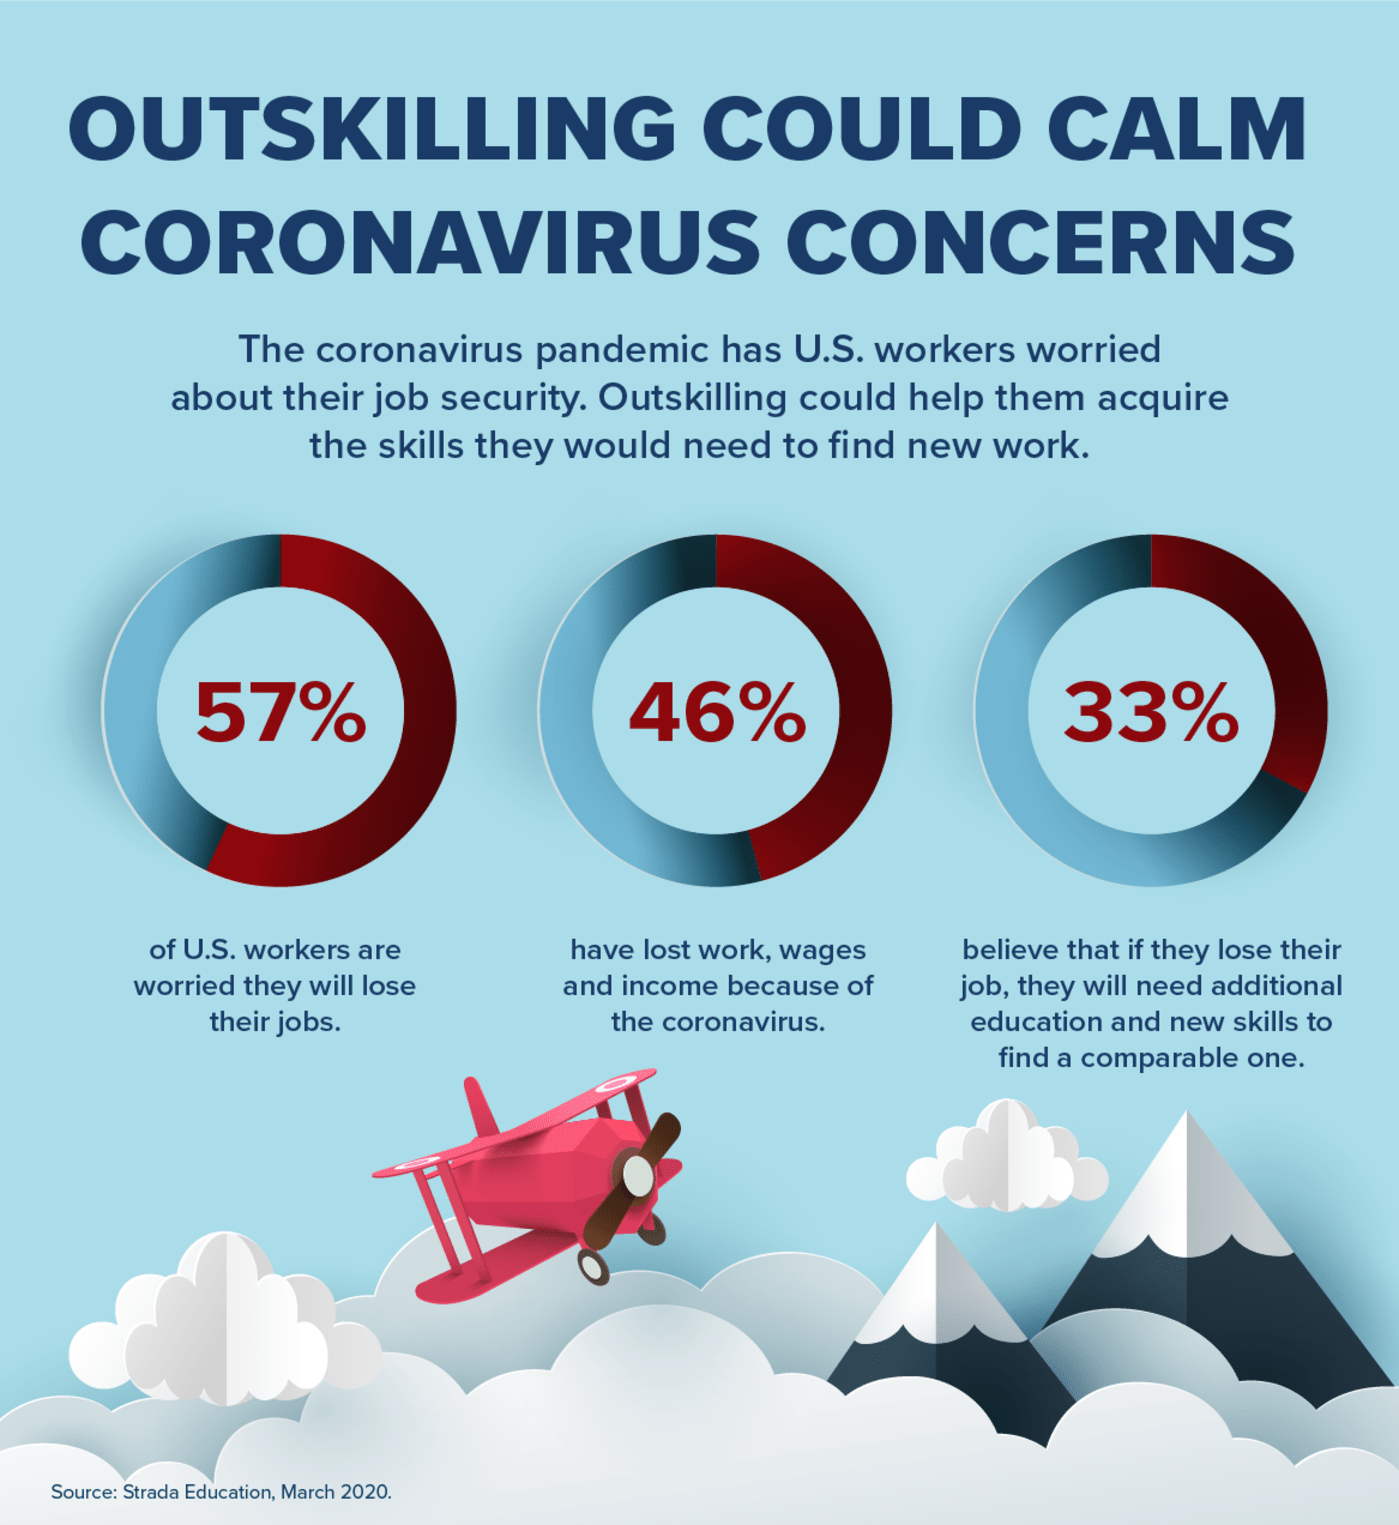 Outskilling Could Calm Coronavirus Concerns